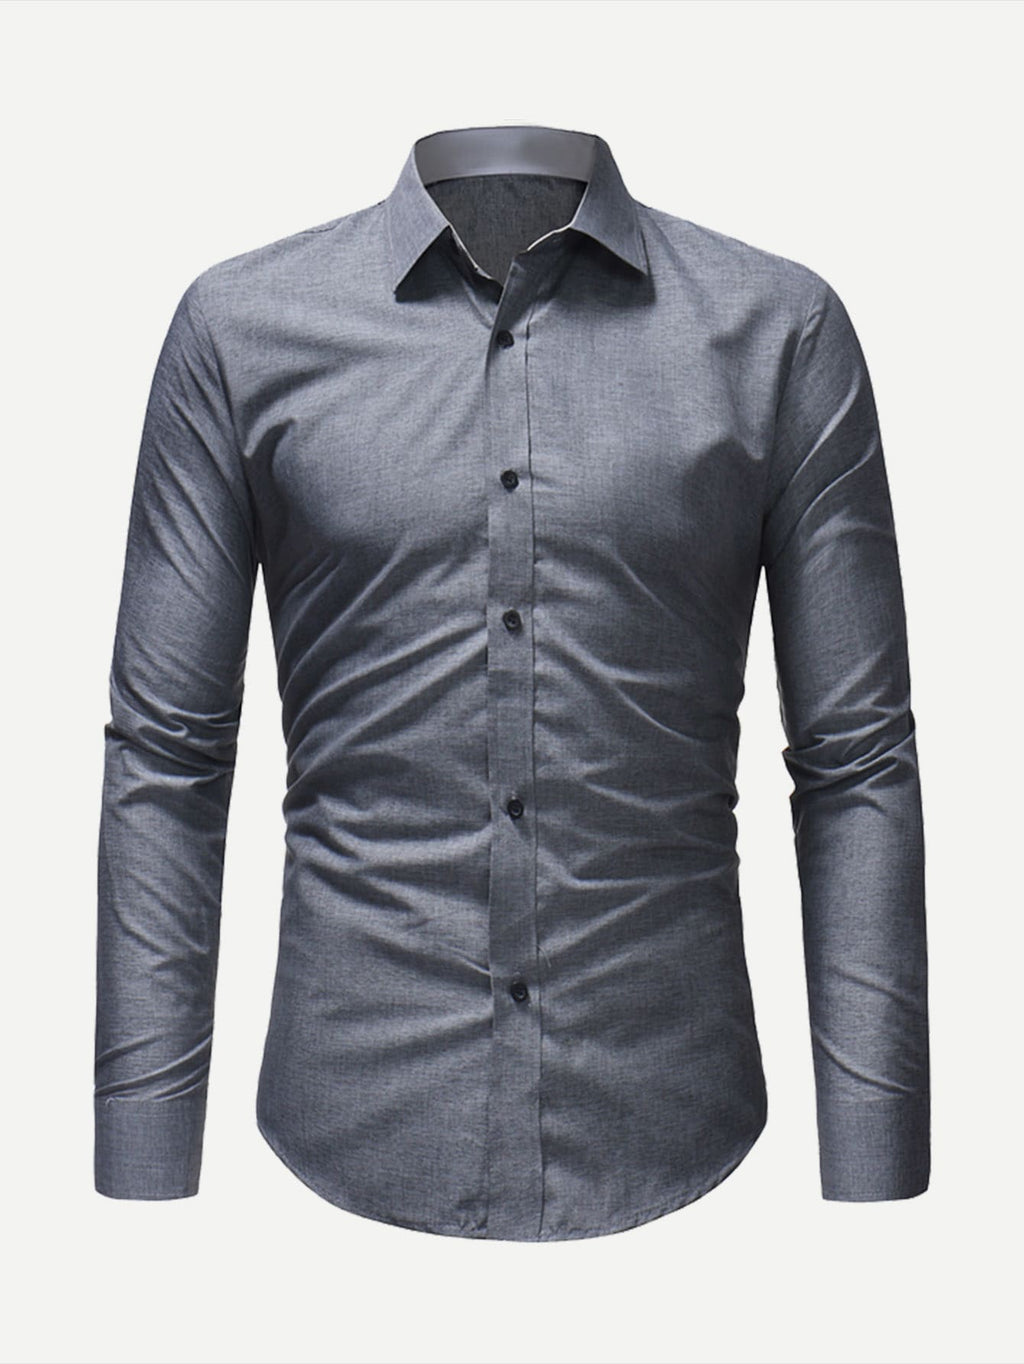 Men's Formal Shirts - Plain Curved Hem Shirt